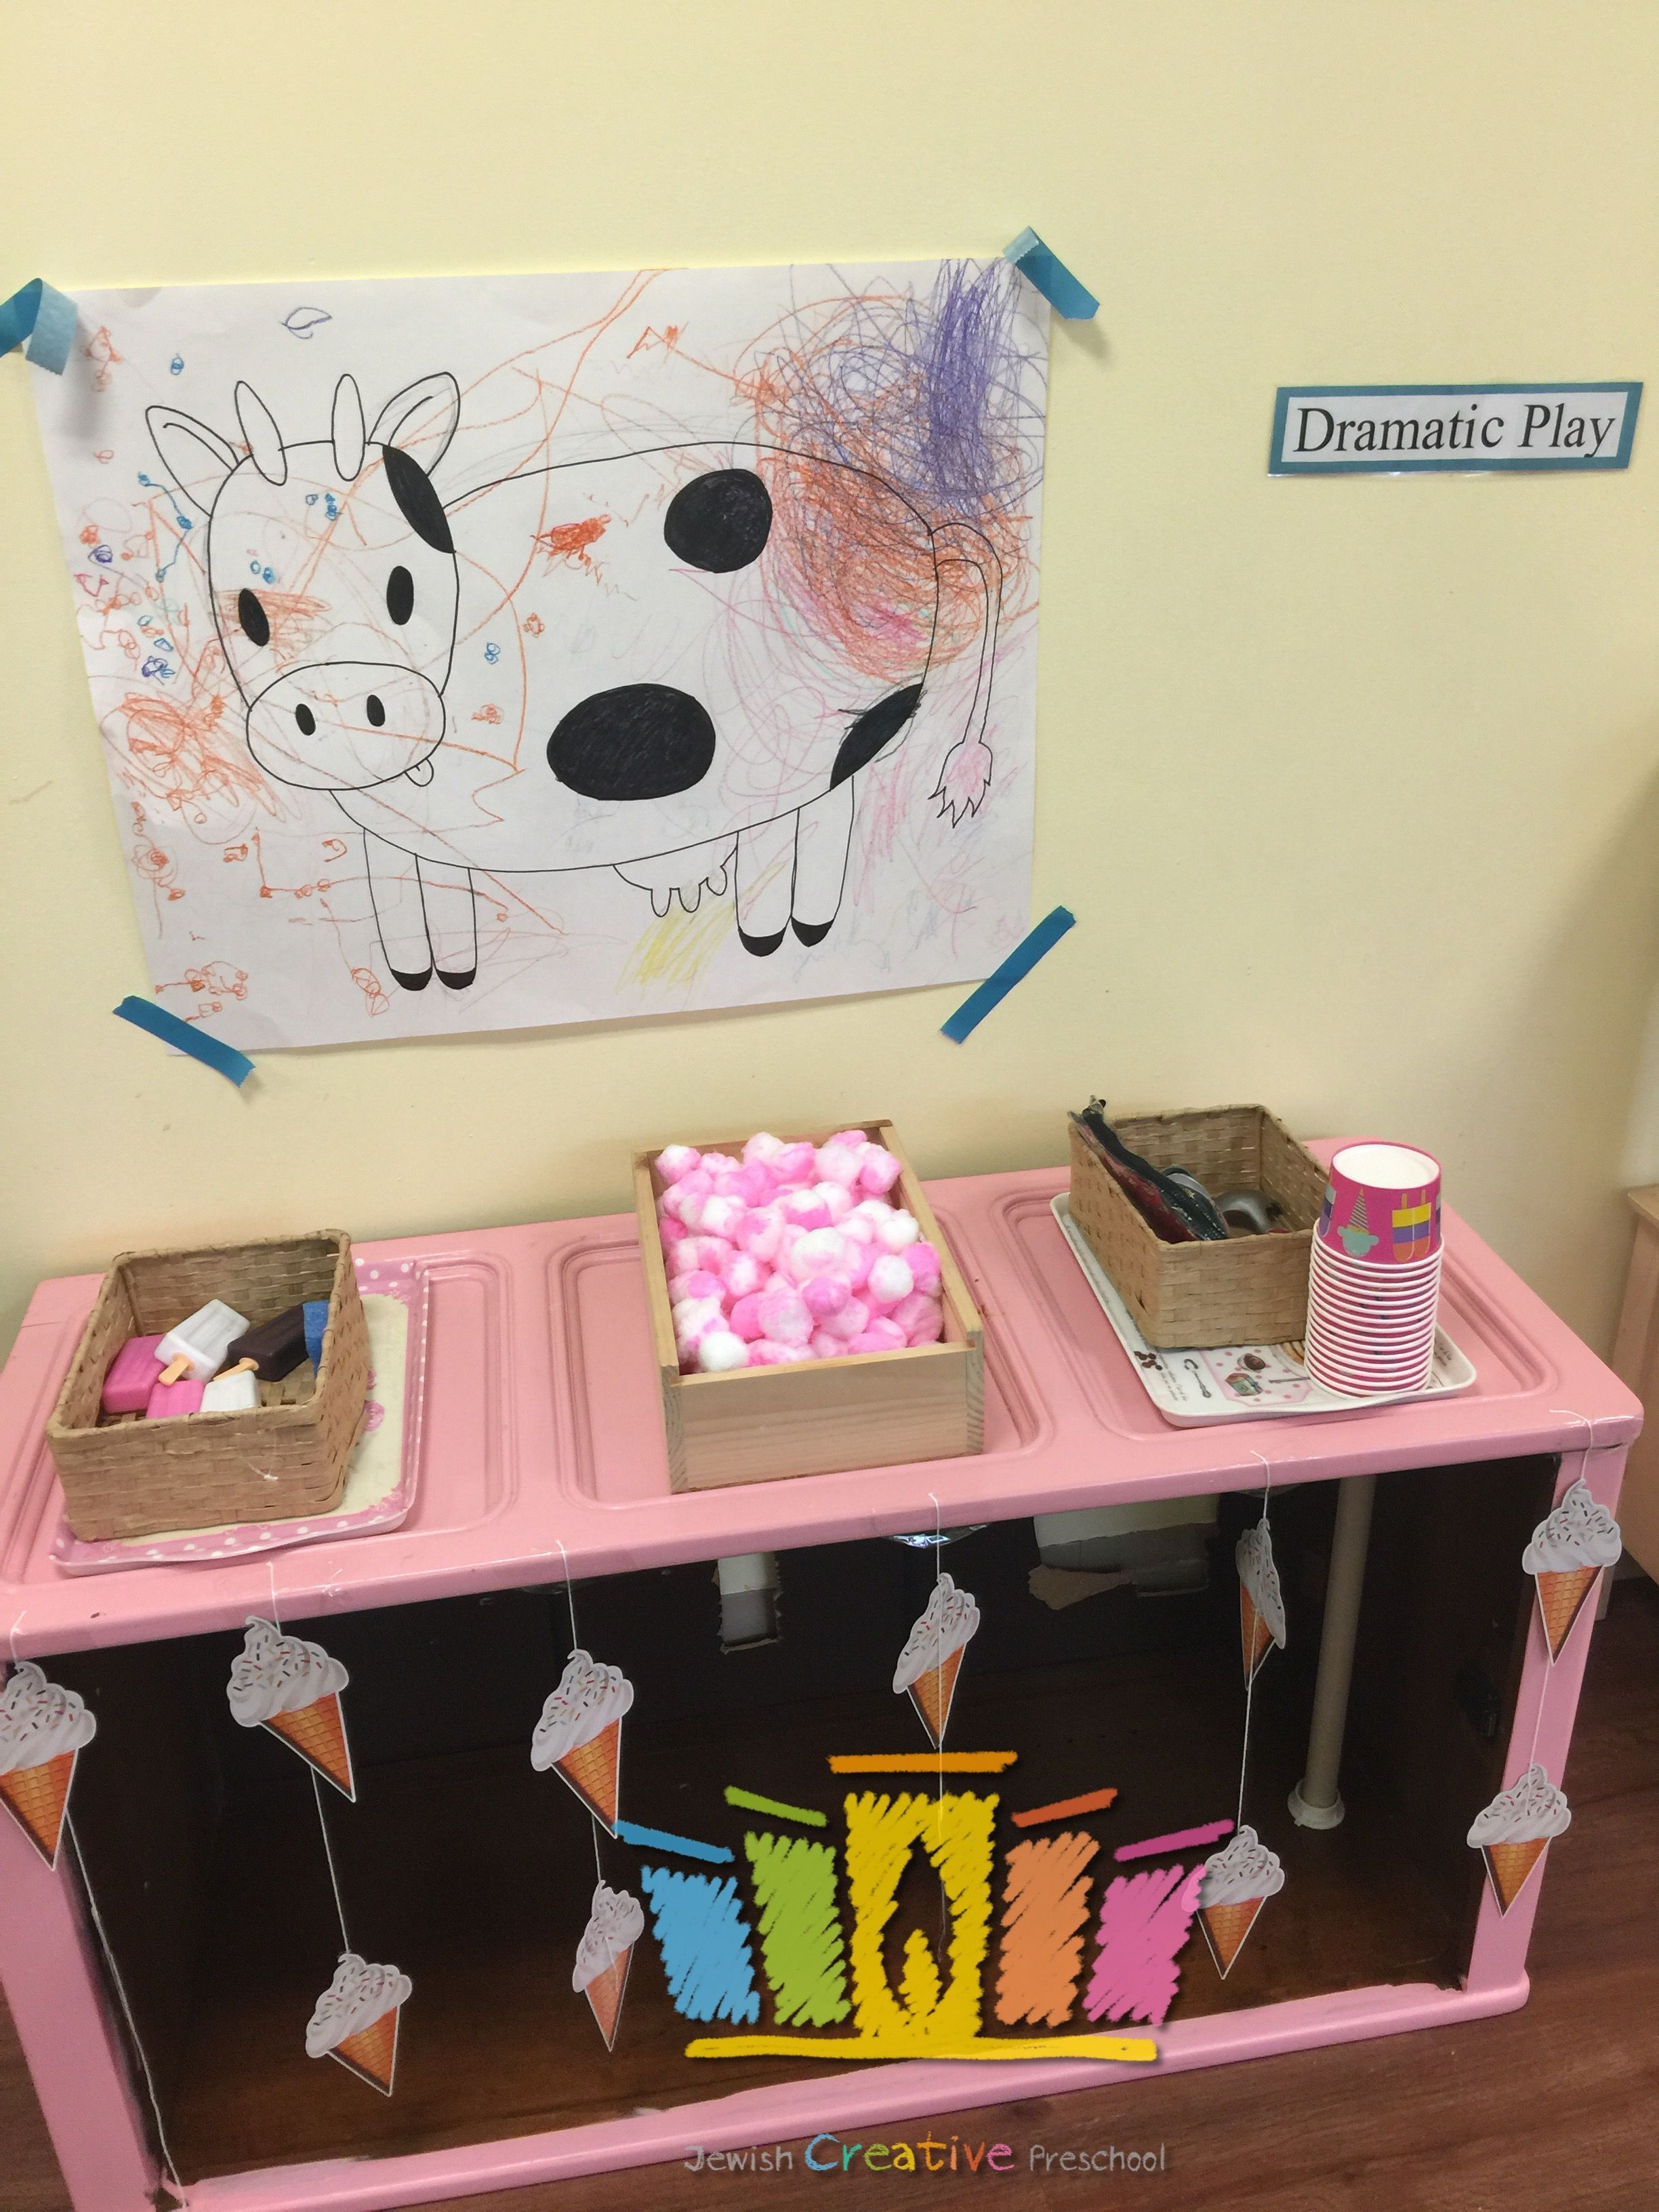 Shavuot Ice Cream Parlor Dramatic Play Area Learning